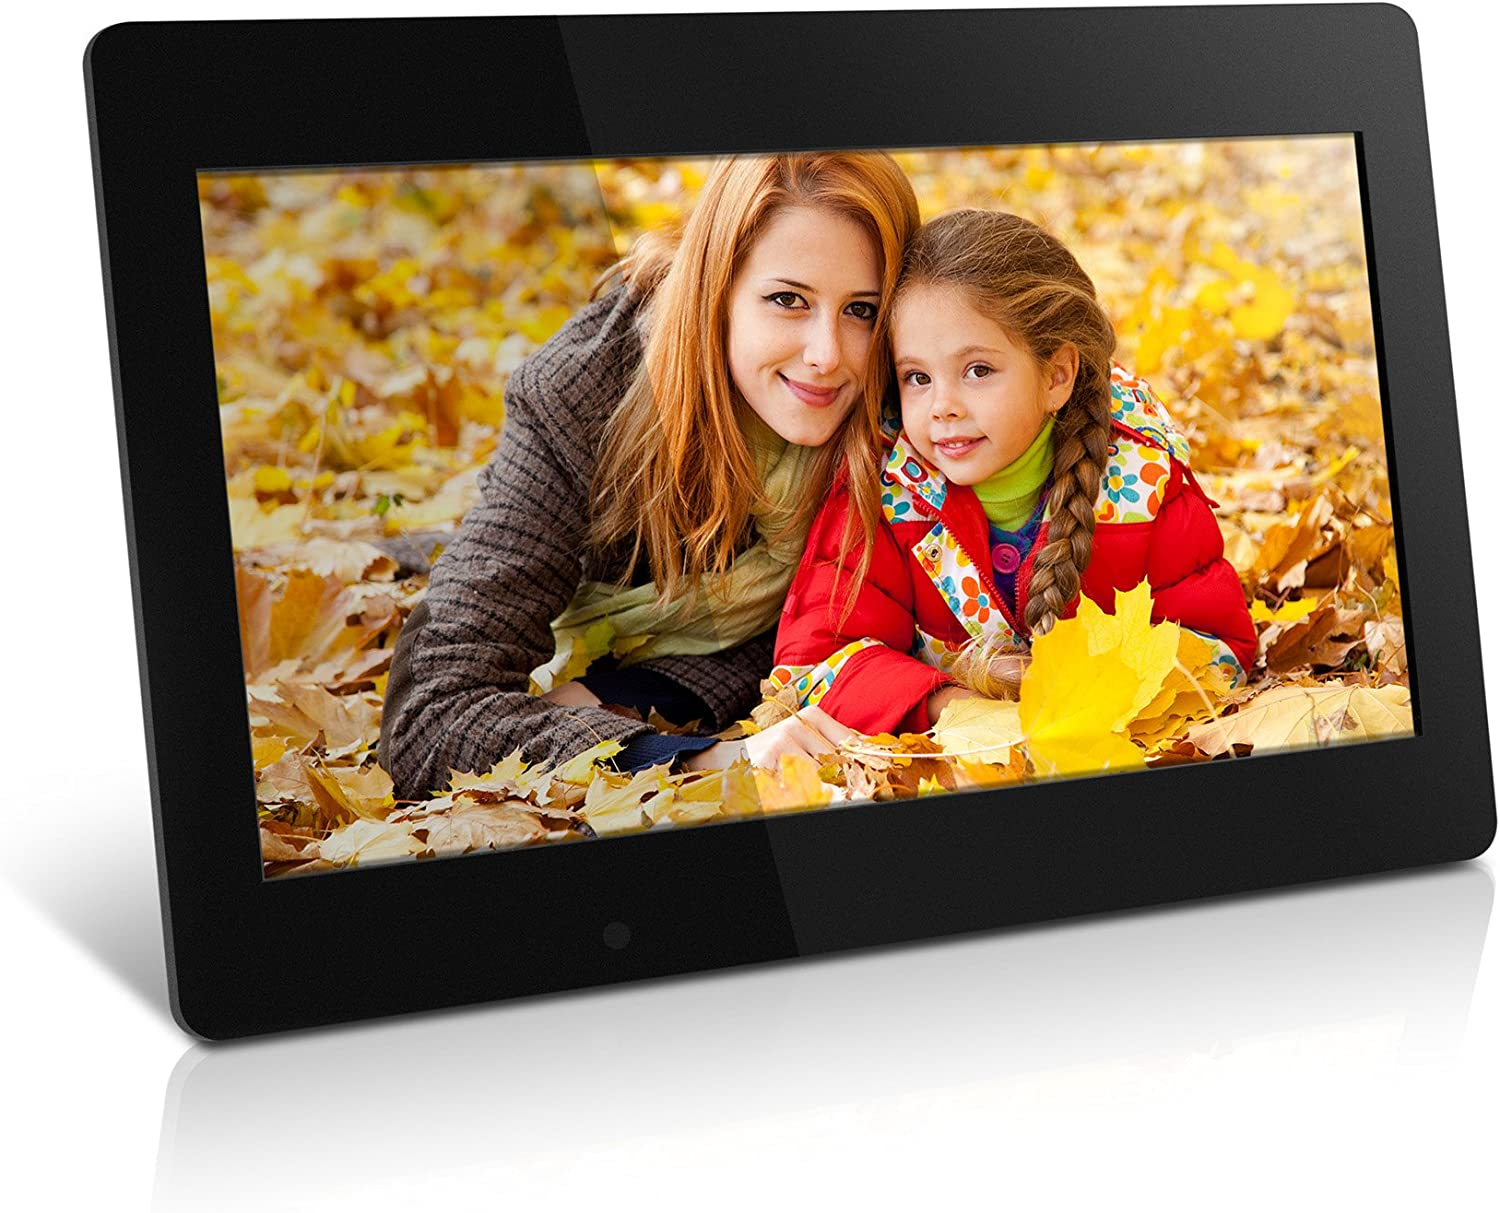 Color : Black, Size : 460x280x35mm Lorachun Digital Photo Frame Electronic Photo Frame Support 18.5 Inch 1080P HDMI